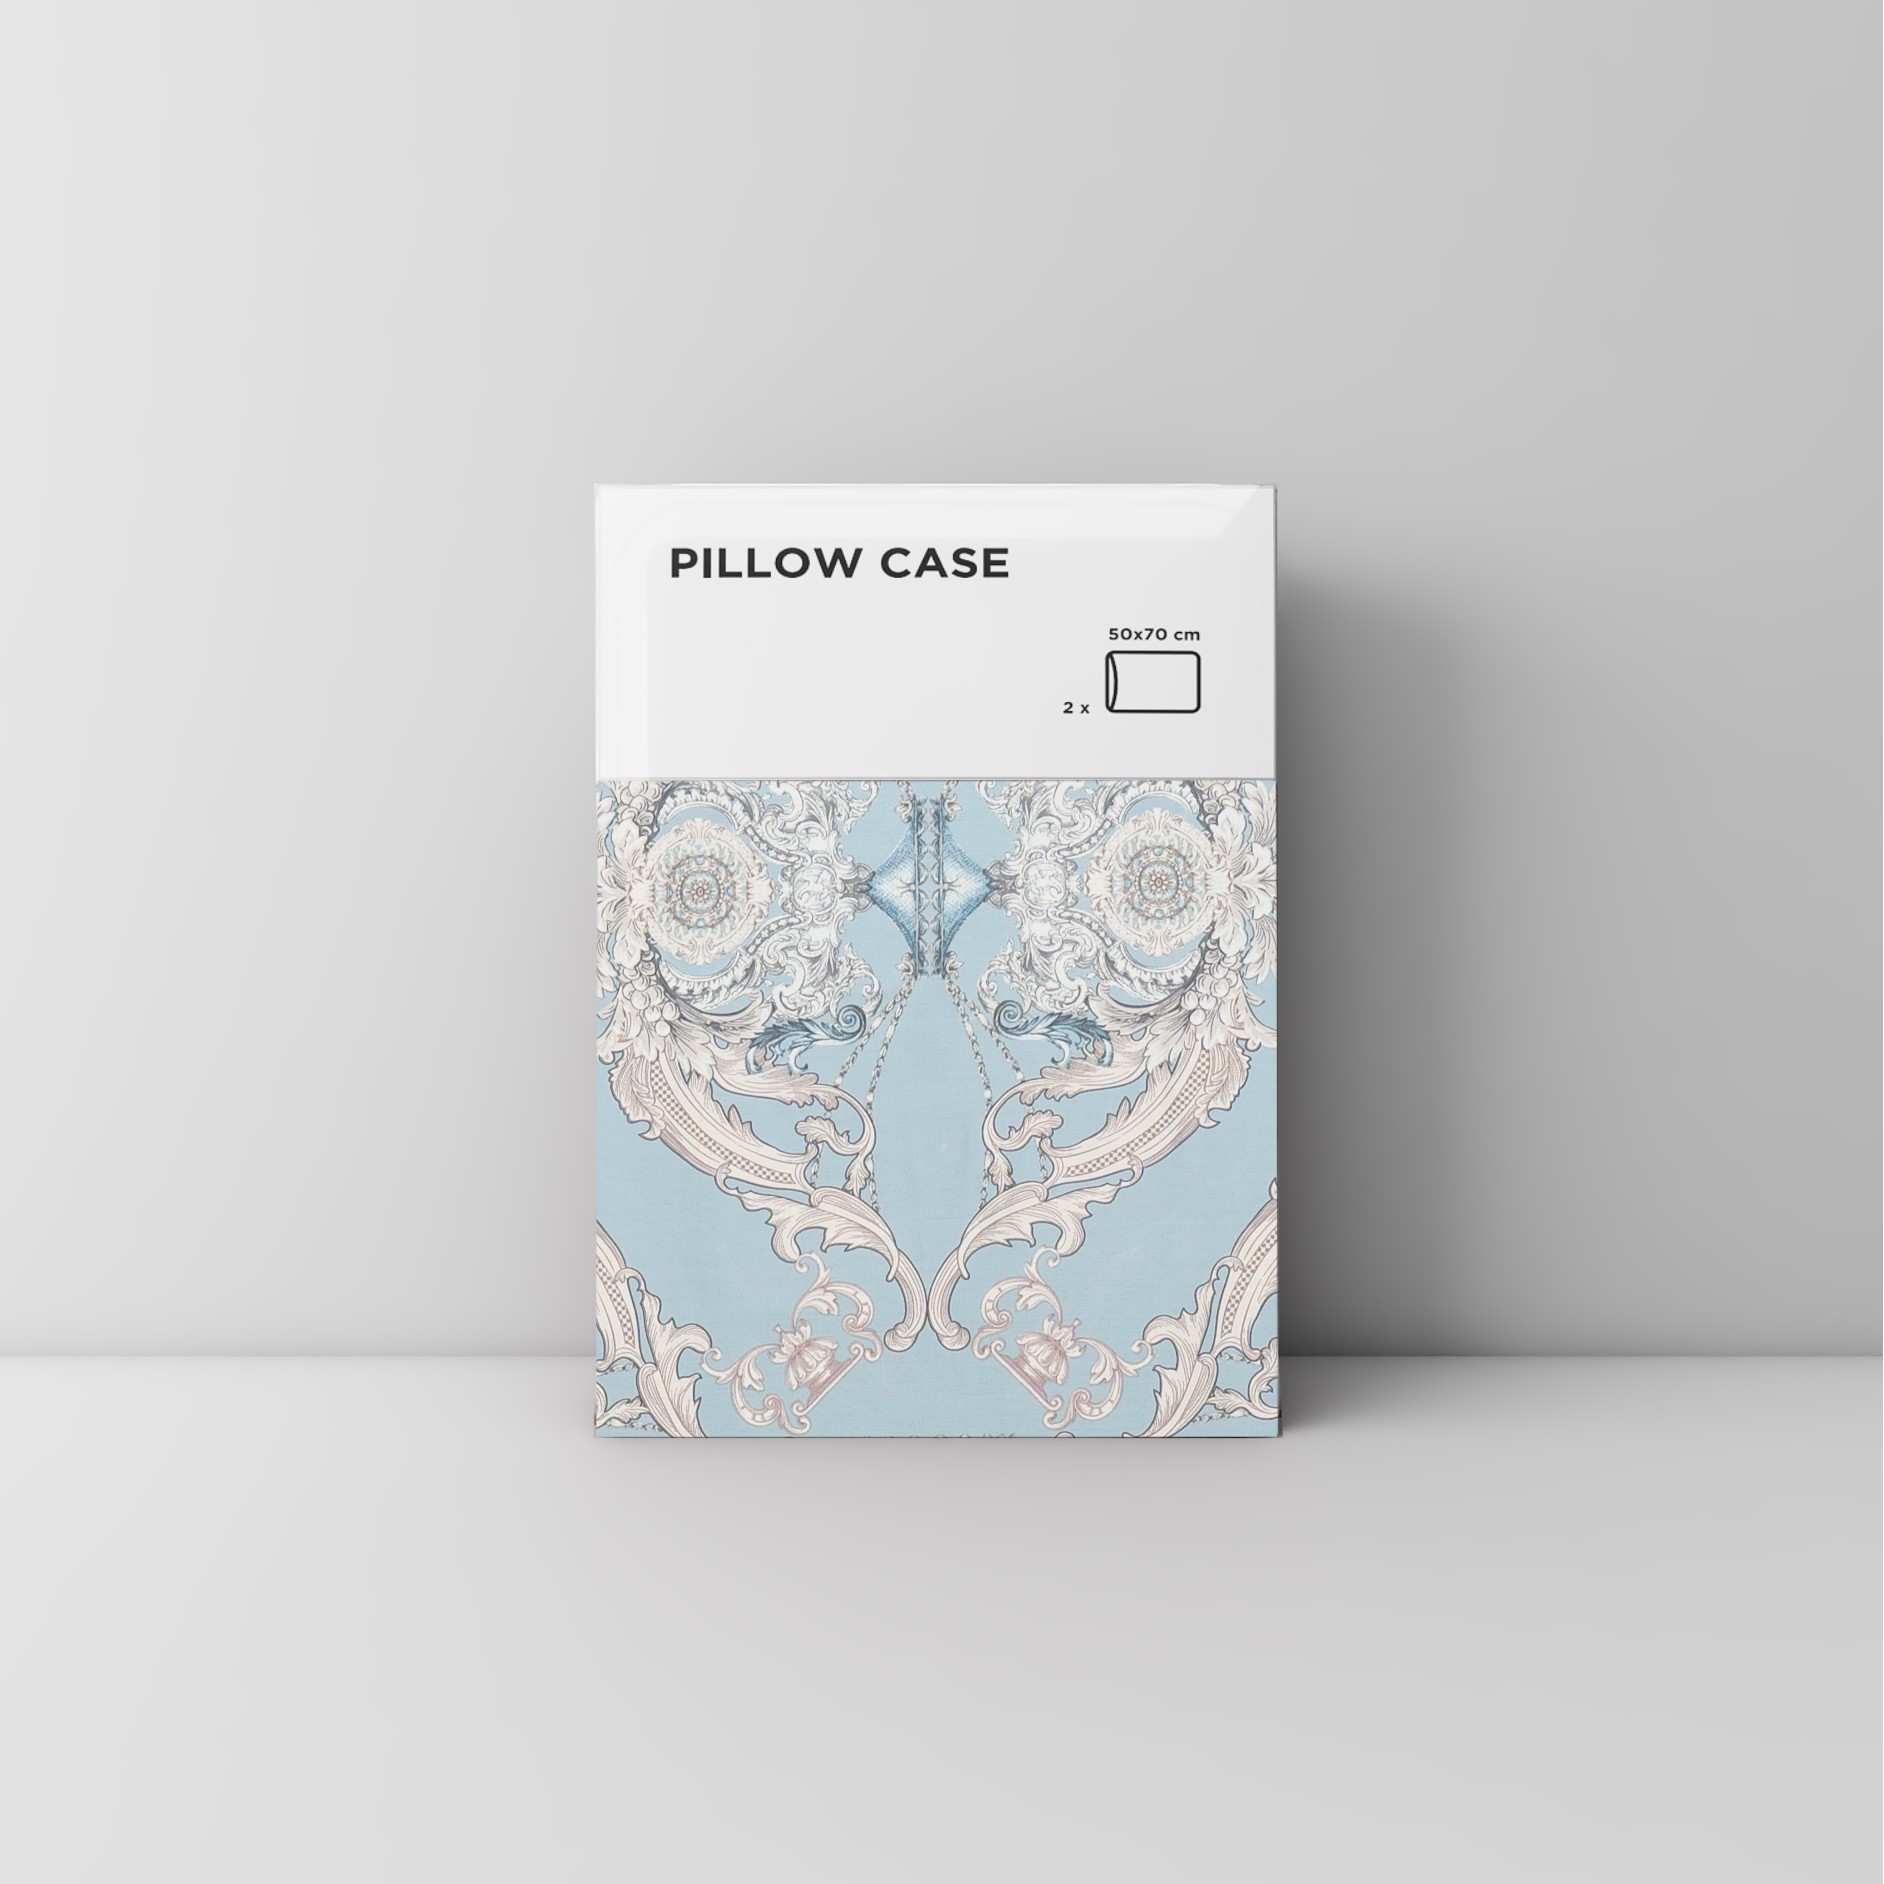 Pillow case 210 Classic pattern on light blue